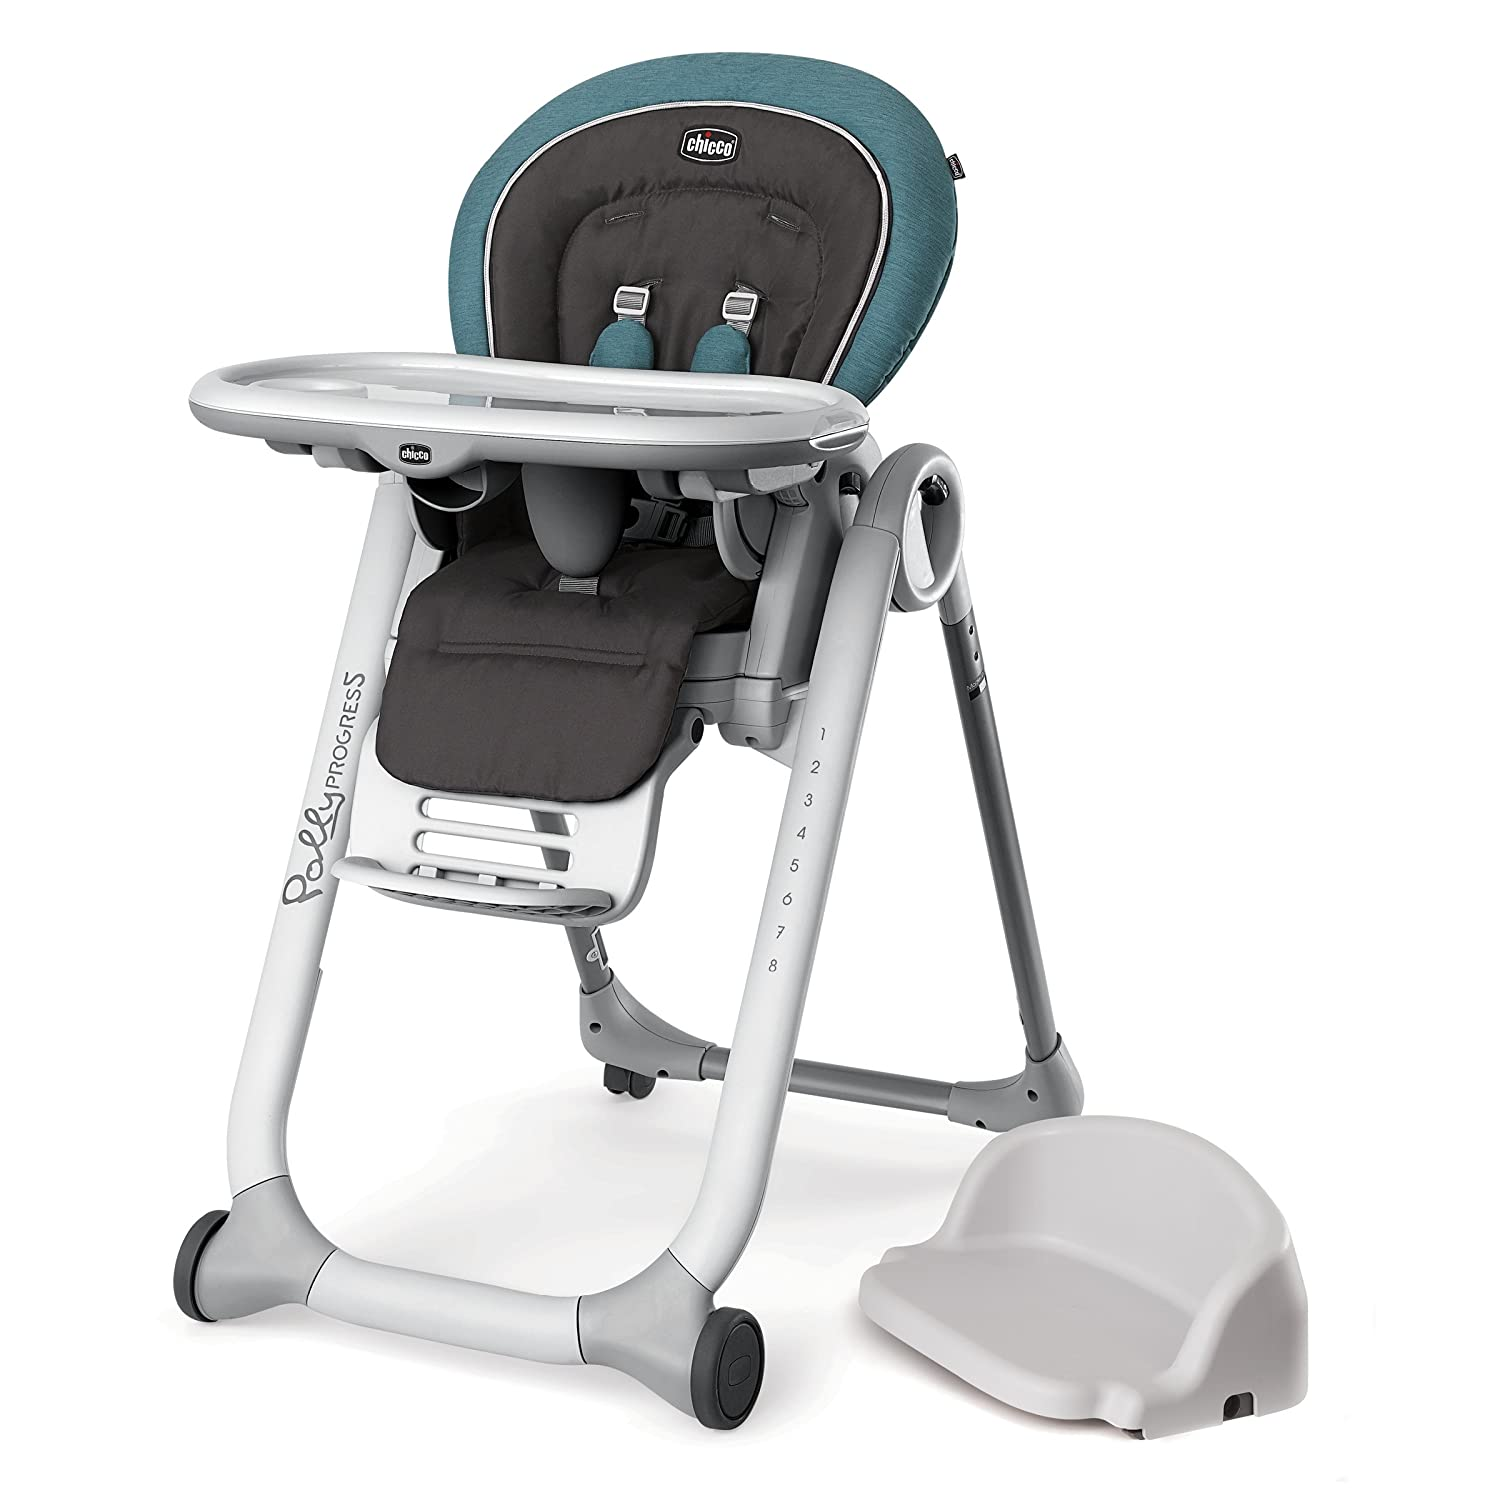 Chicco Progress 5-in-1 Highchair, Calypso 05079408580070